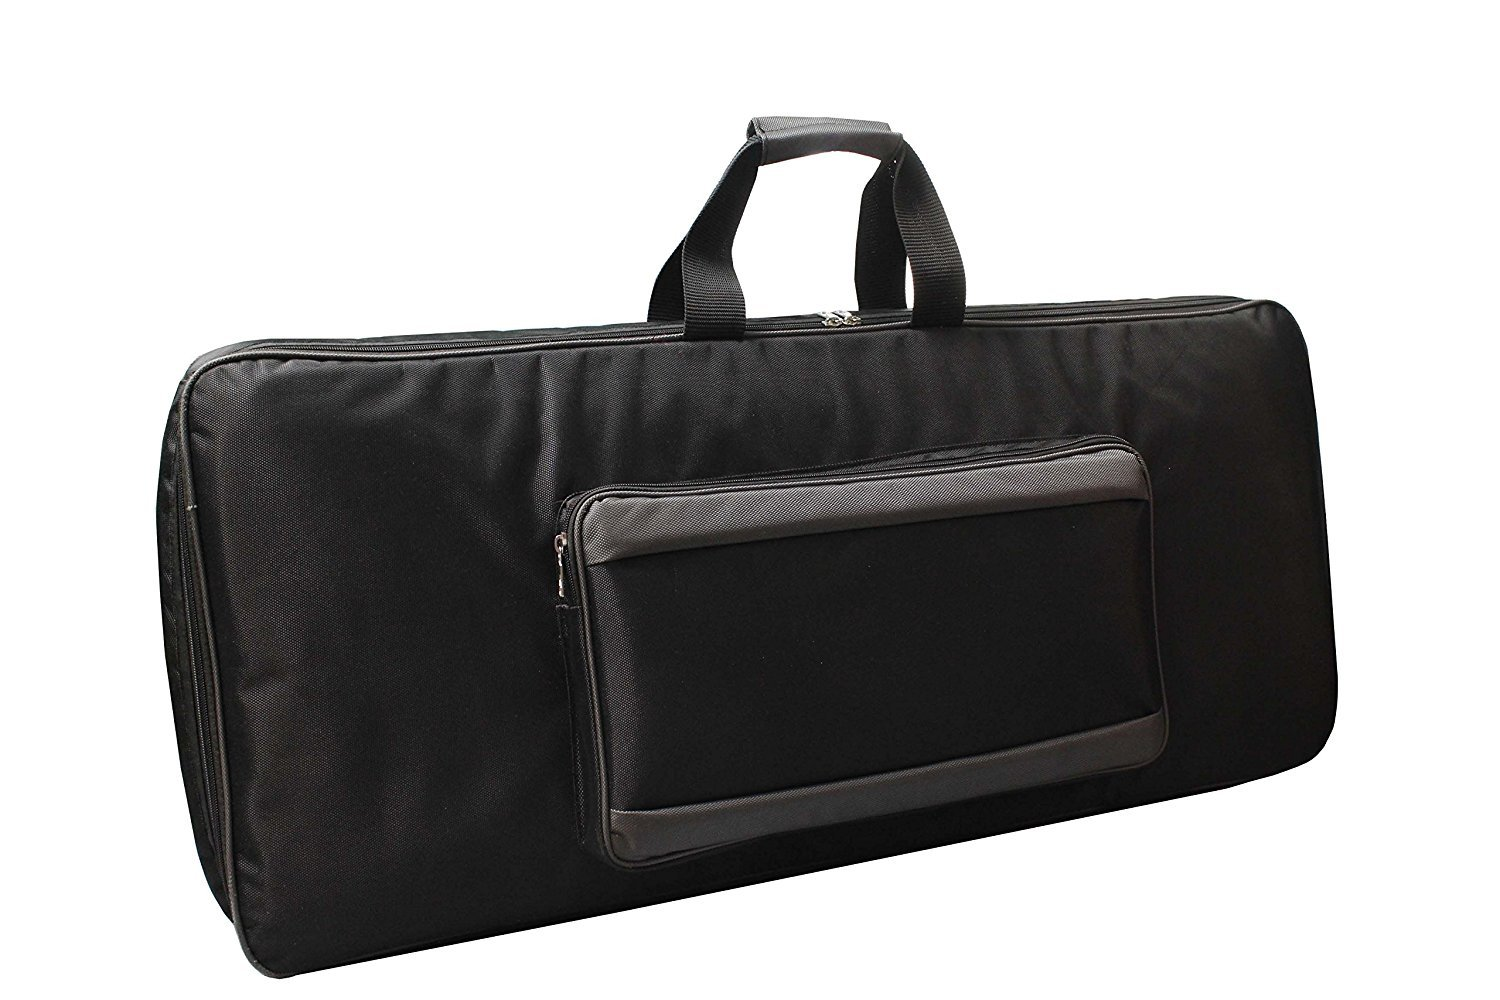 Baritone Distribution Case For Yamaha Case For P125 88-Key Keyboard Padded Sponge Black Bag Novation MiniNova 37